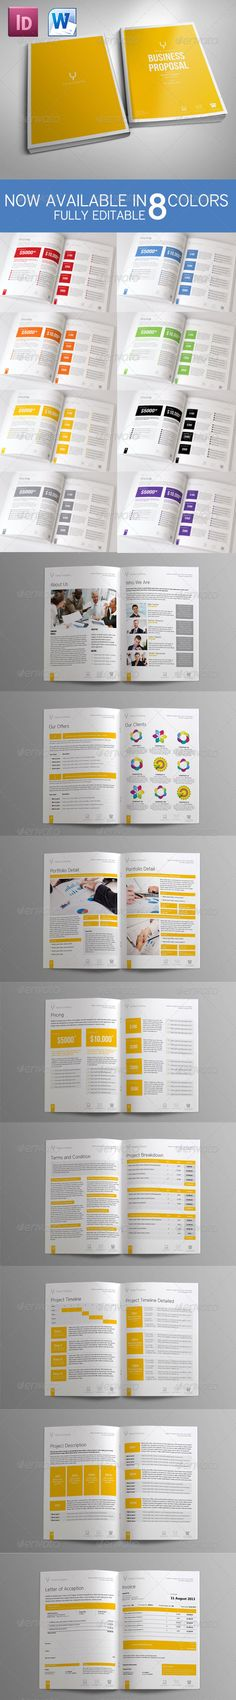 Gstudio Web Proposal Template V2 Proposal templates, Proposals - microsoft invoices